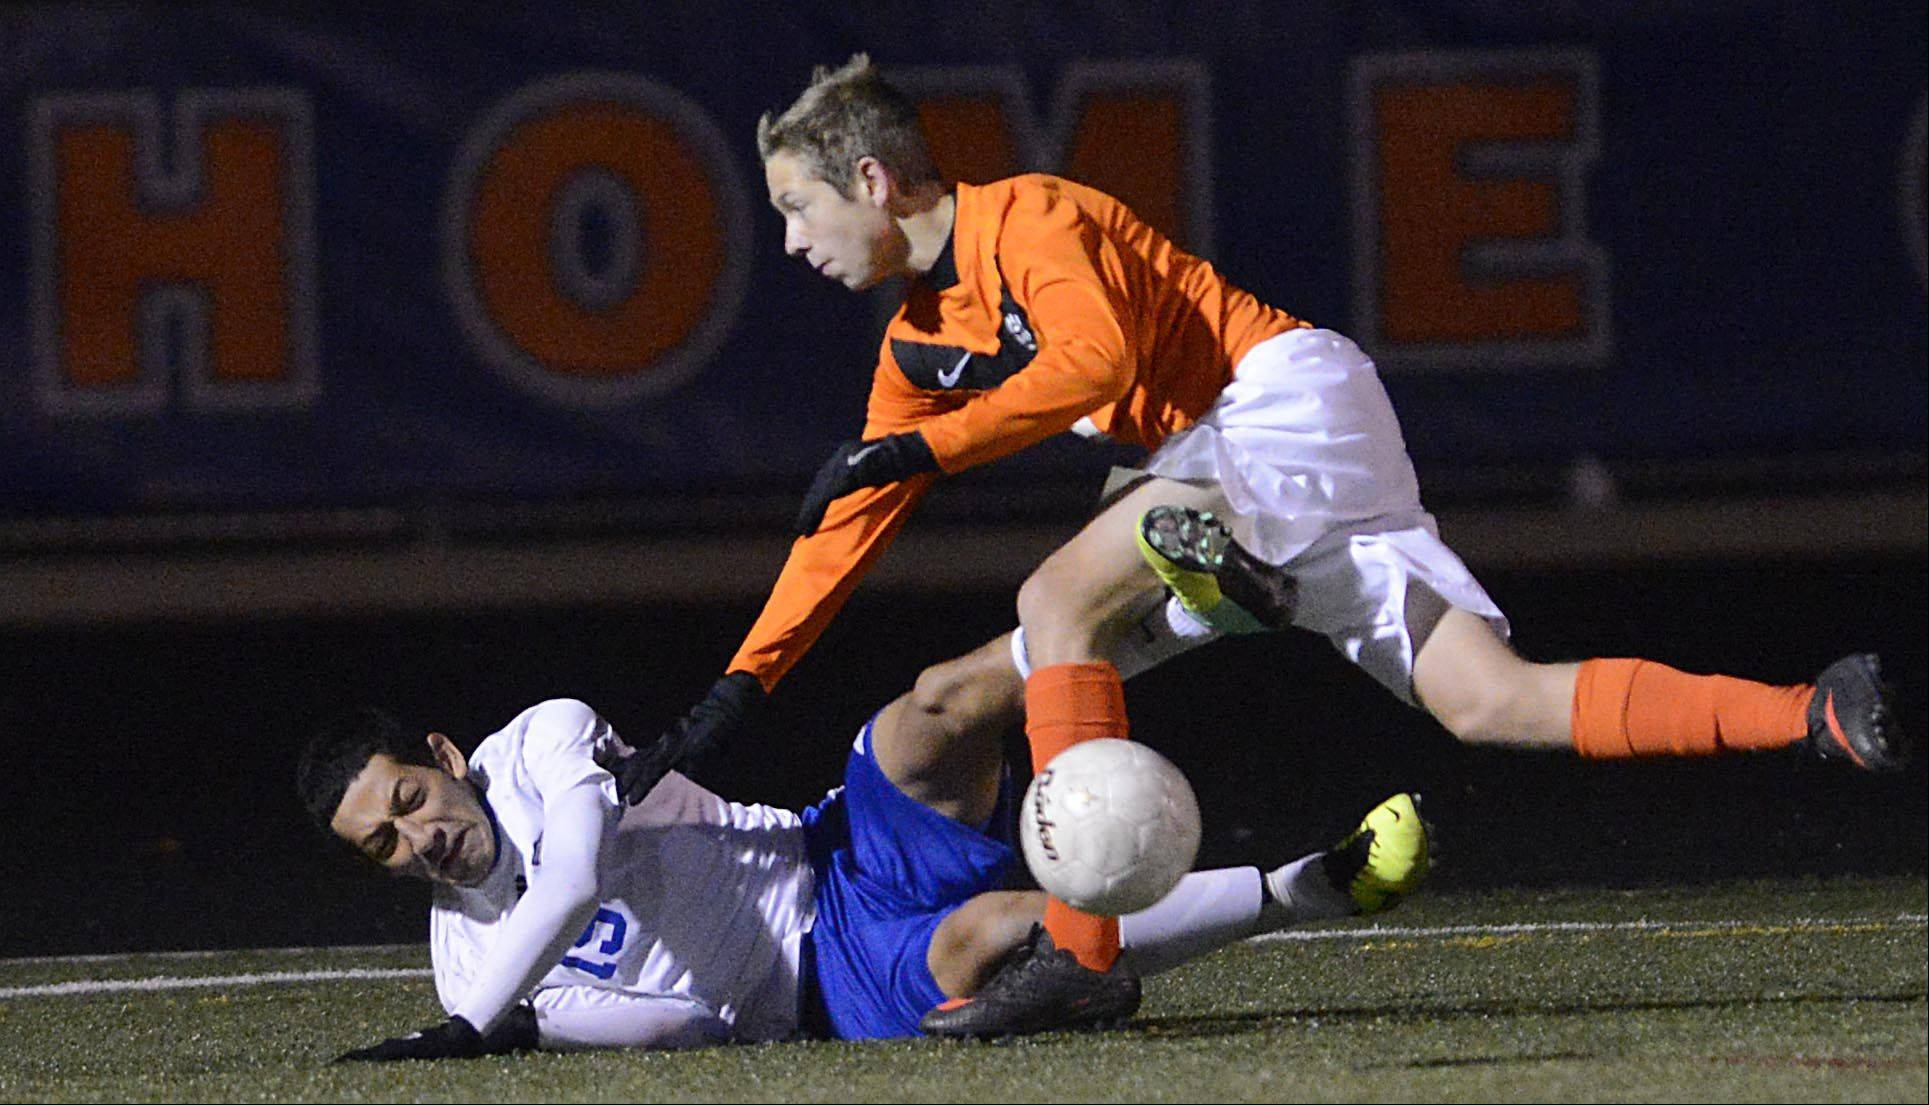 Wheeling's Michael Hernandez falls as he tangles with Edwardsville's Tommy Giacobbe in the Class 3A boys soccer state championship game Saturday night in Hoffman Estates.